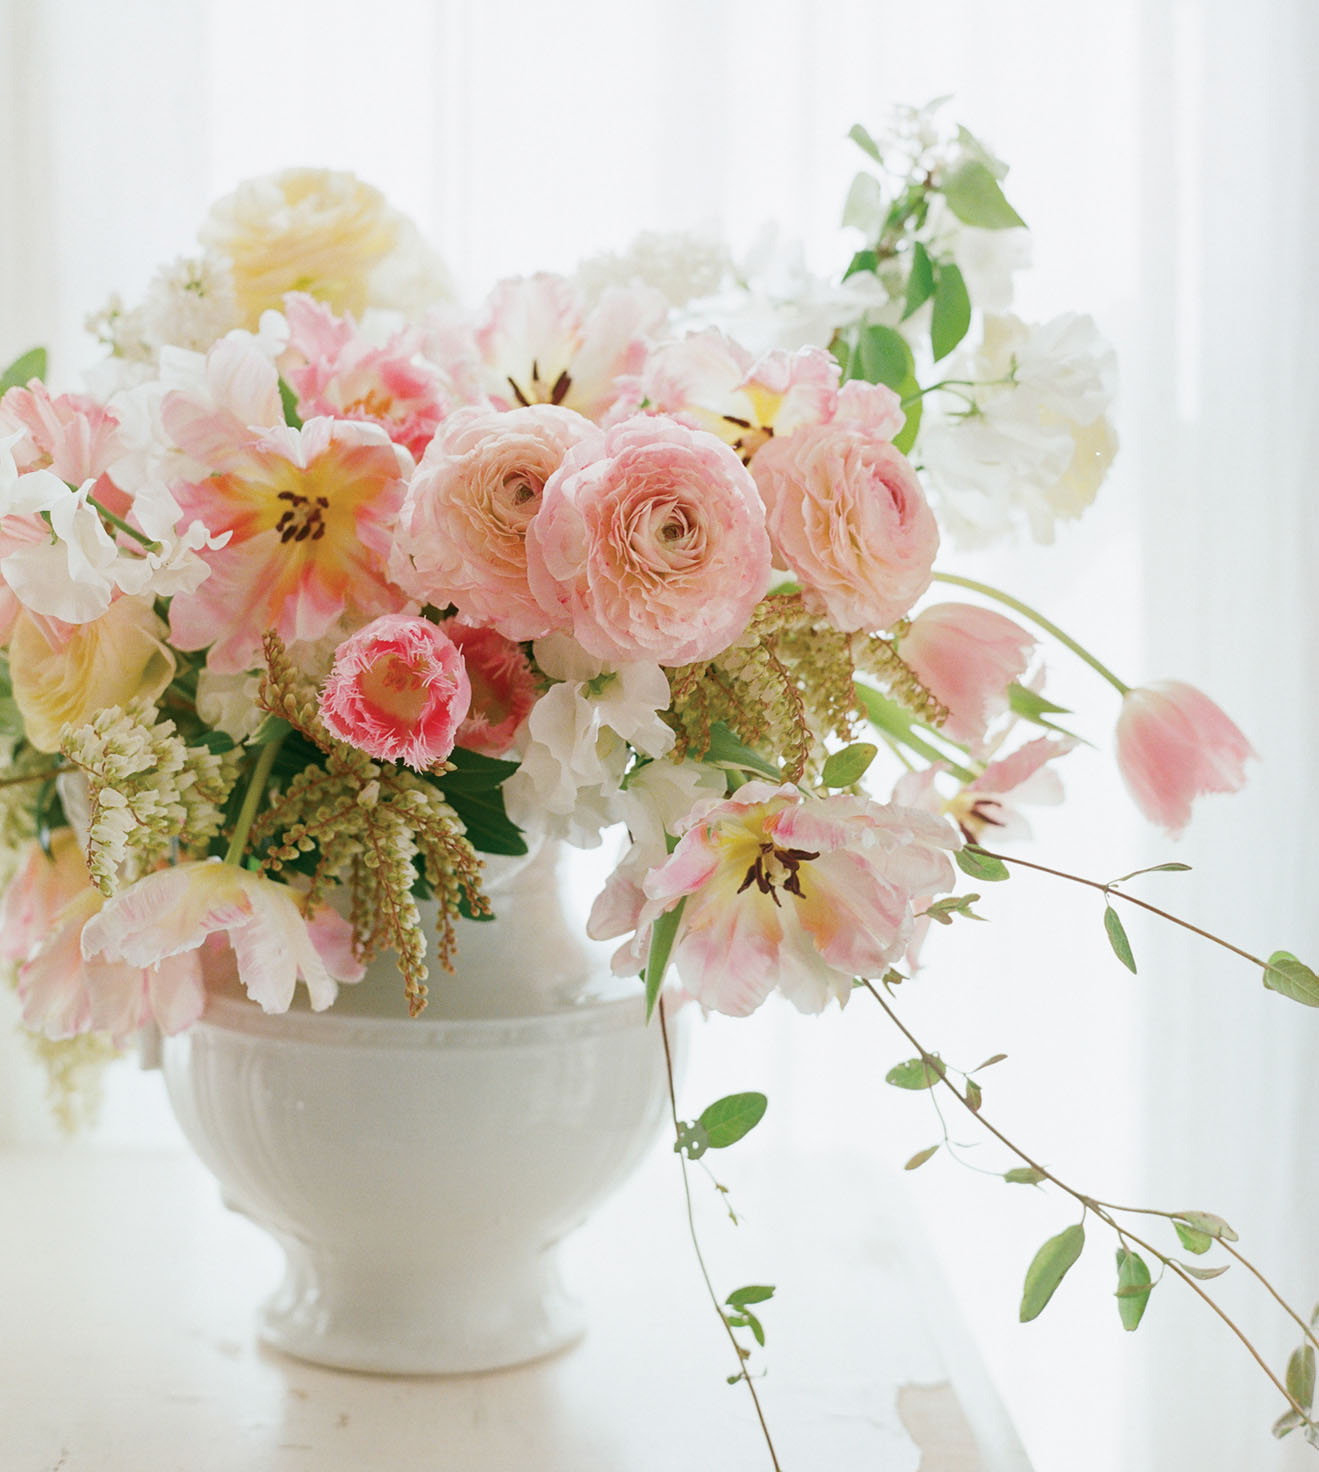 soft pink, romantic arrangement by Kate Holt, featuring tulips that have been manually opened